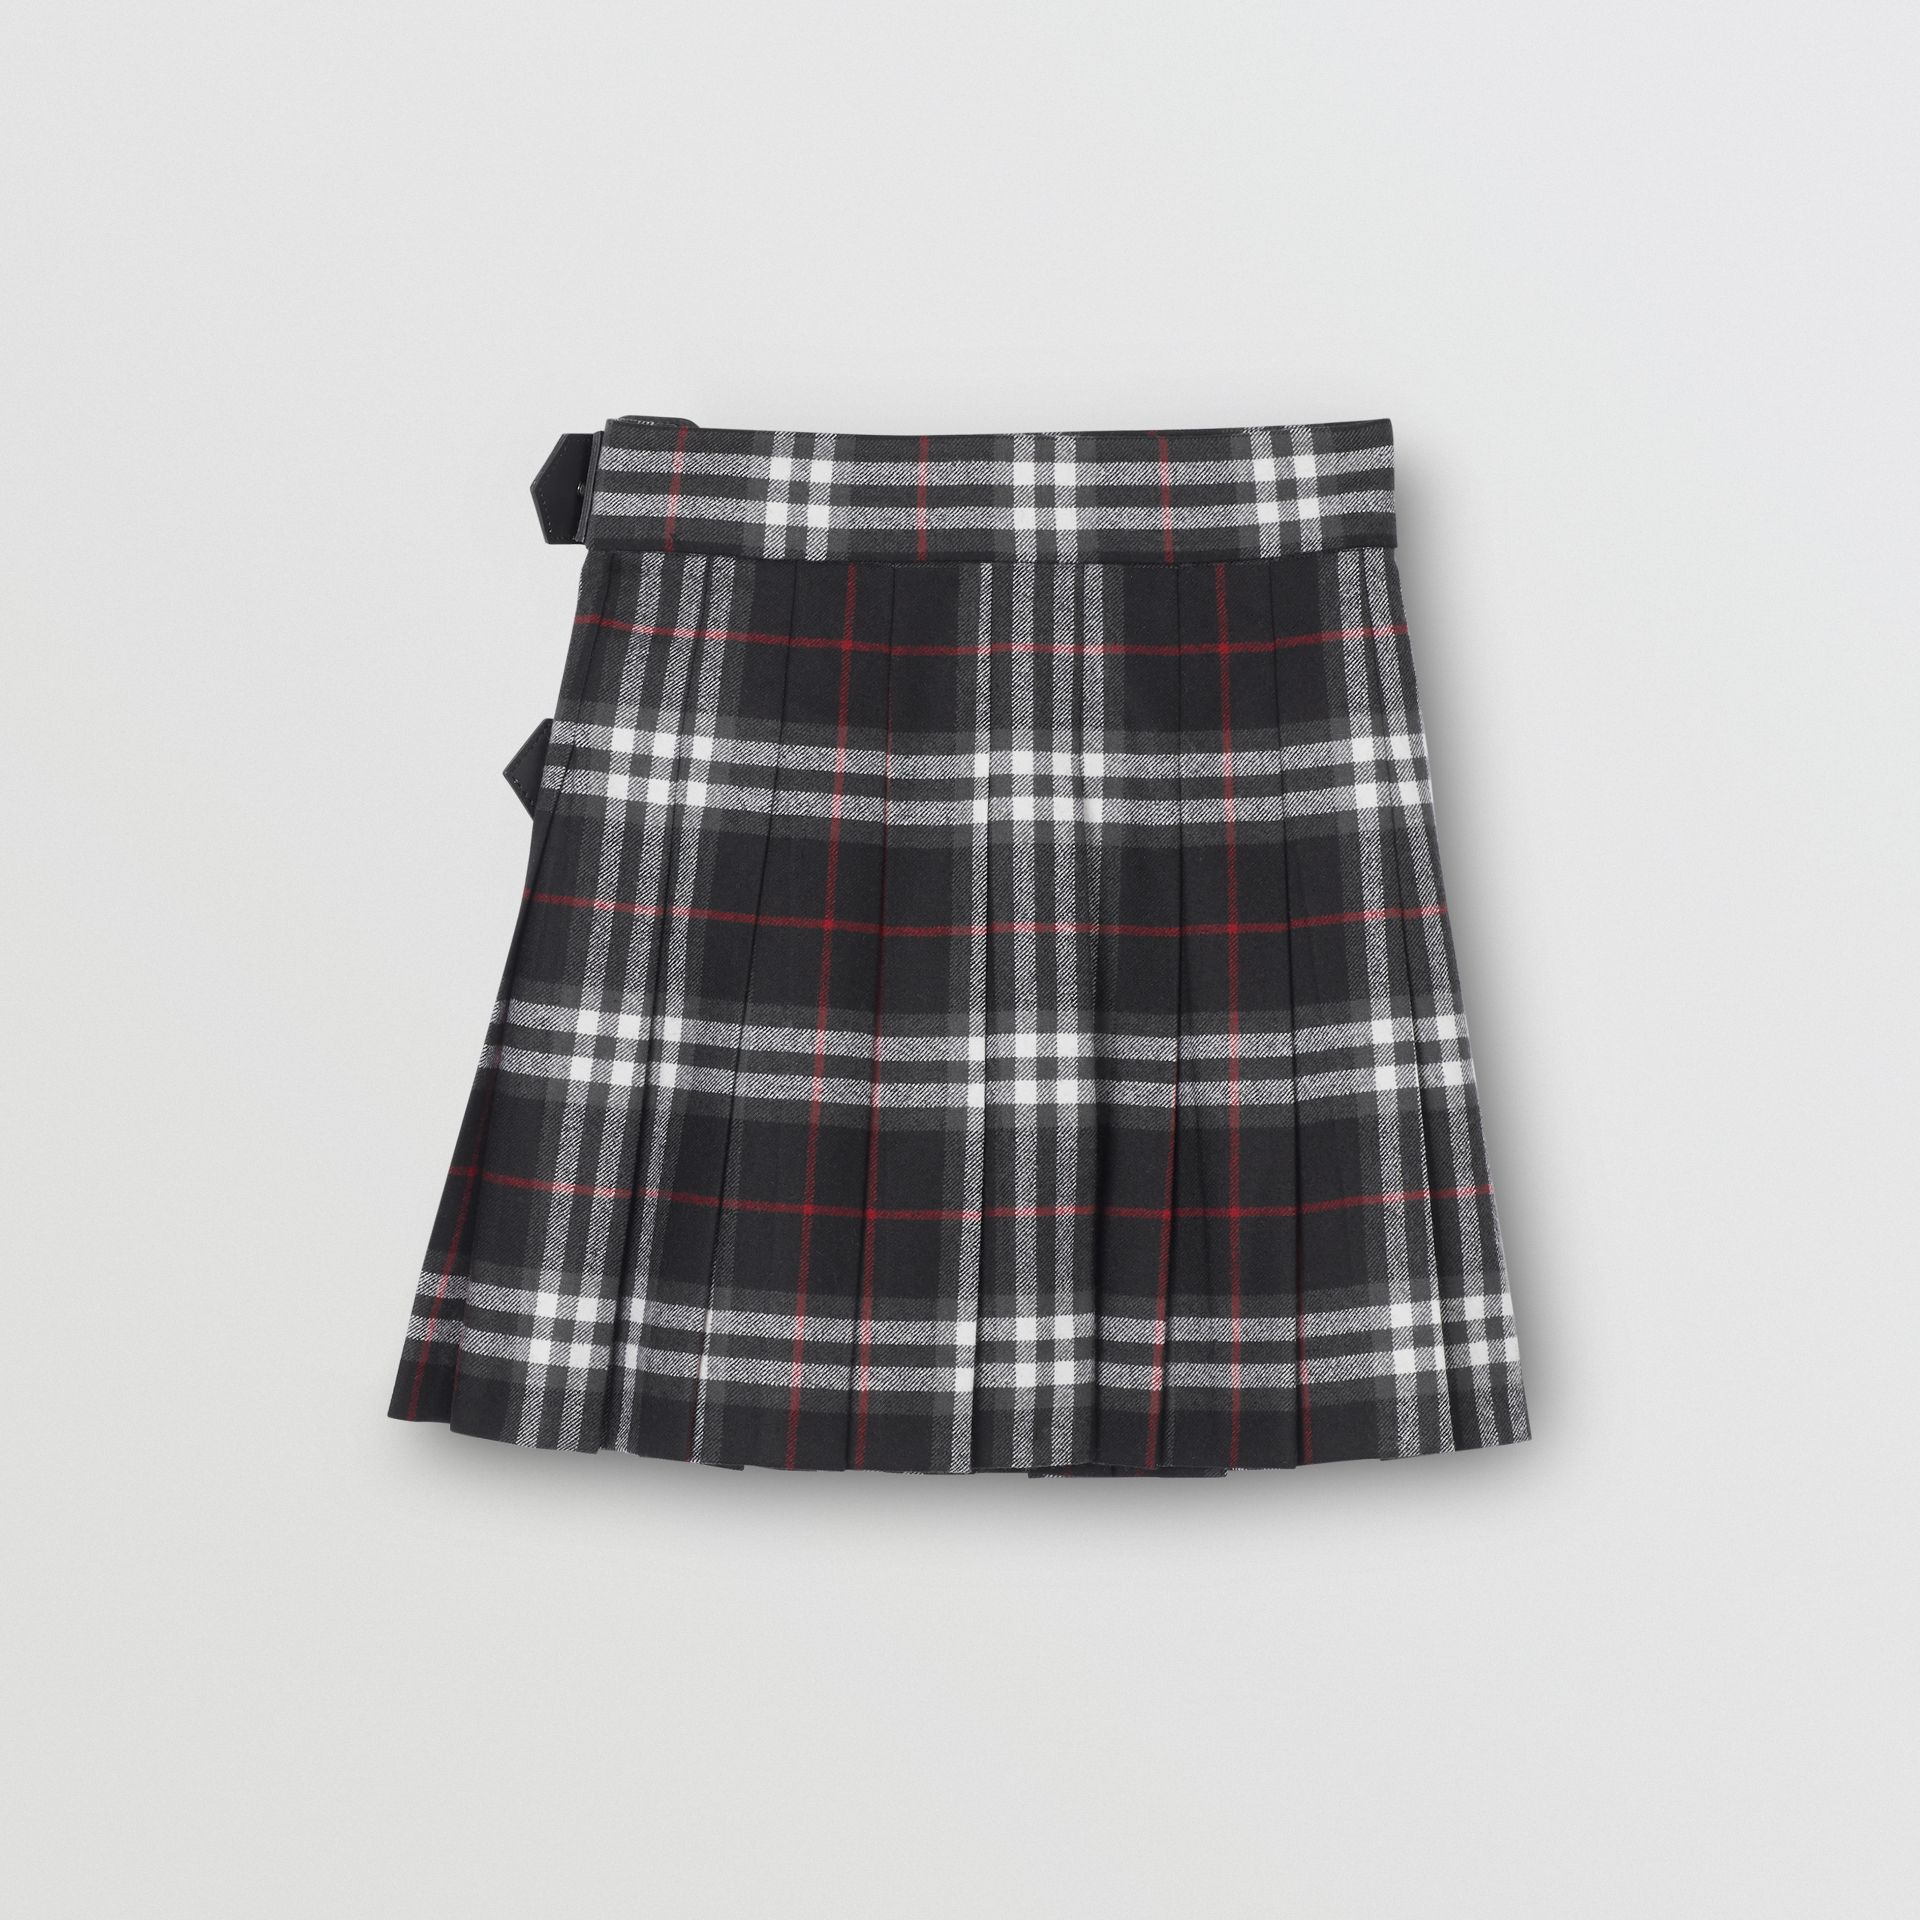 Lambskin Detail Vintage Check Wool Kilt in Black | Burberry - gallery image 3